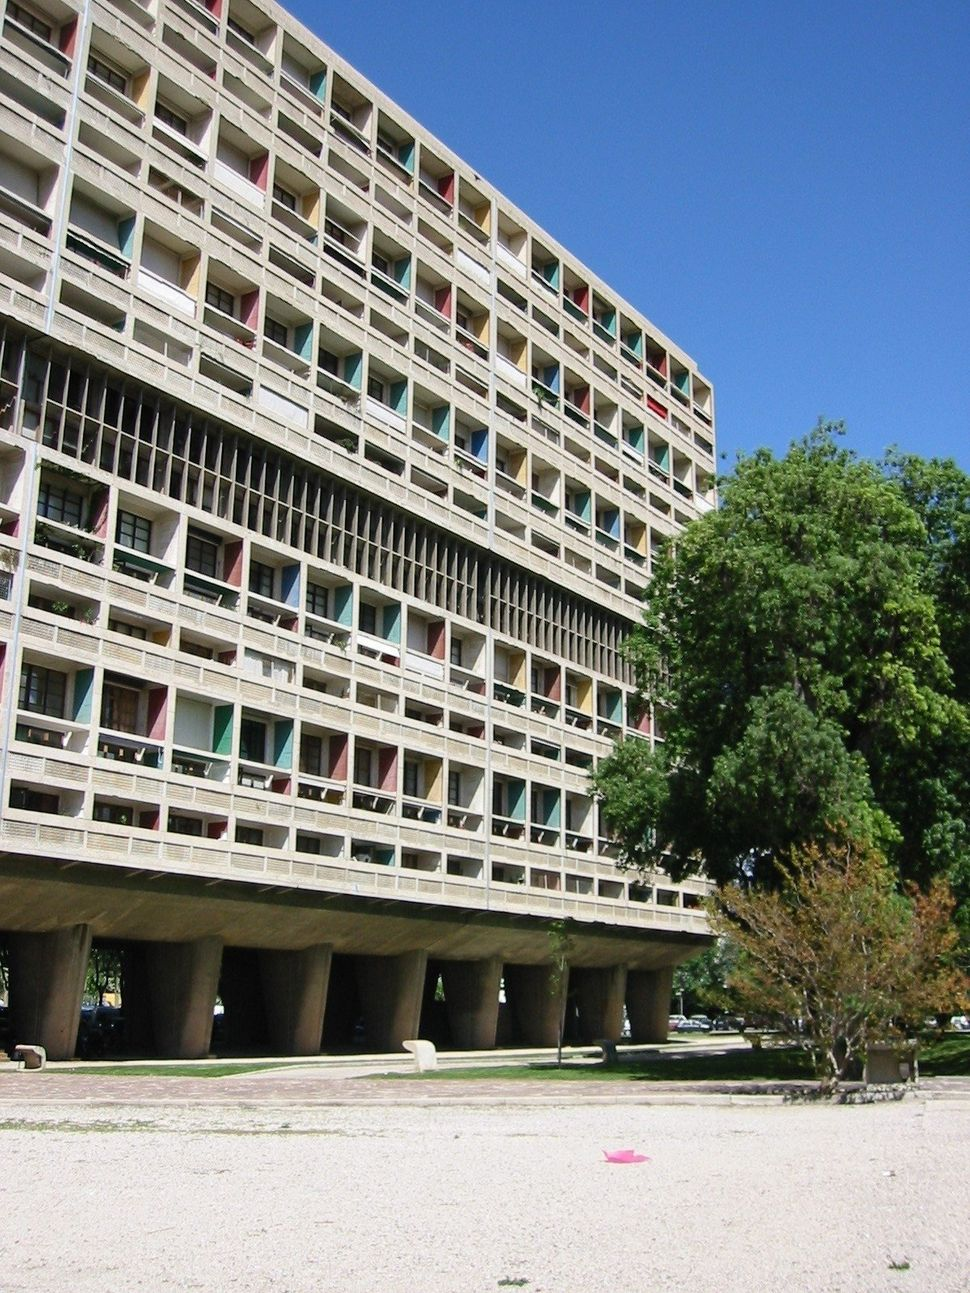 Unité d'Habitation, a housing project Le Corbusier built in Marseille, France, in 1945. The goal was to <a h